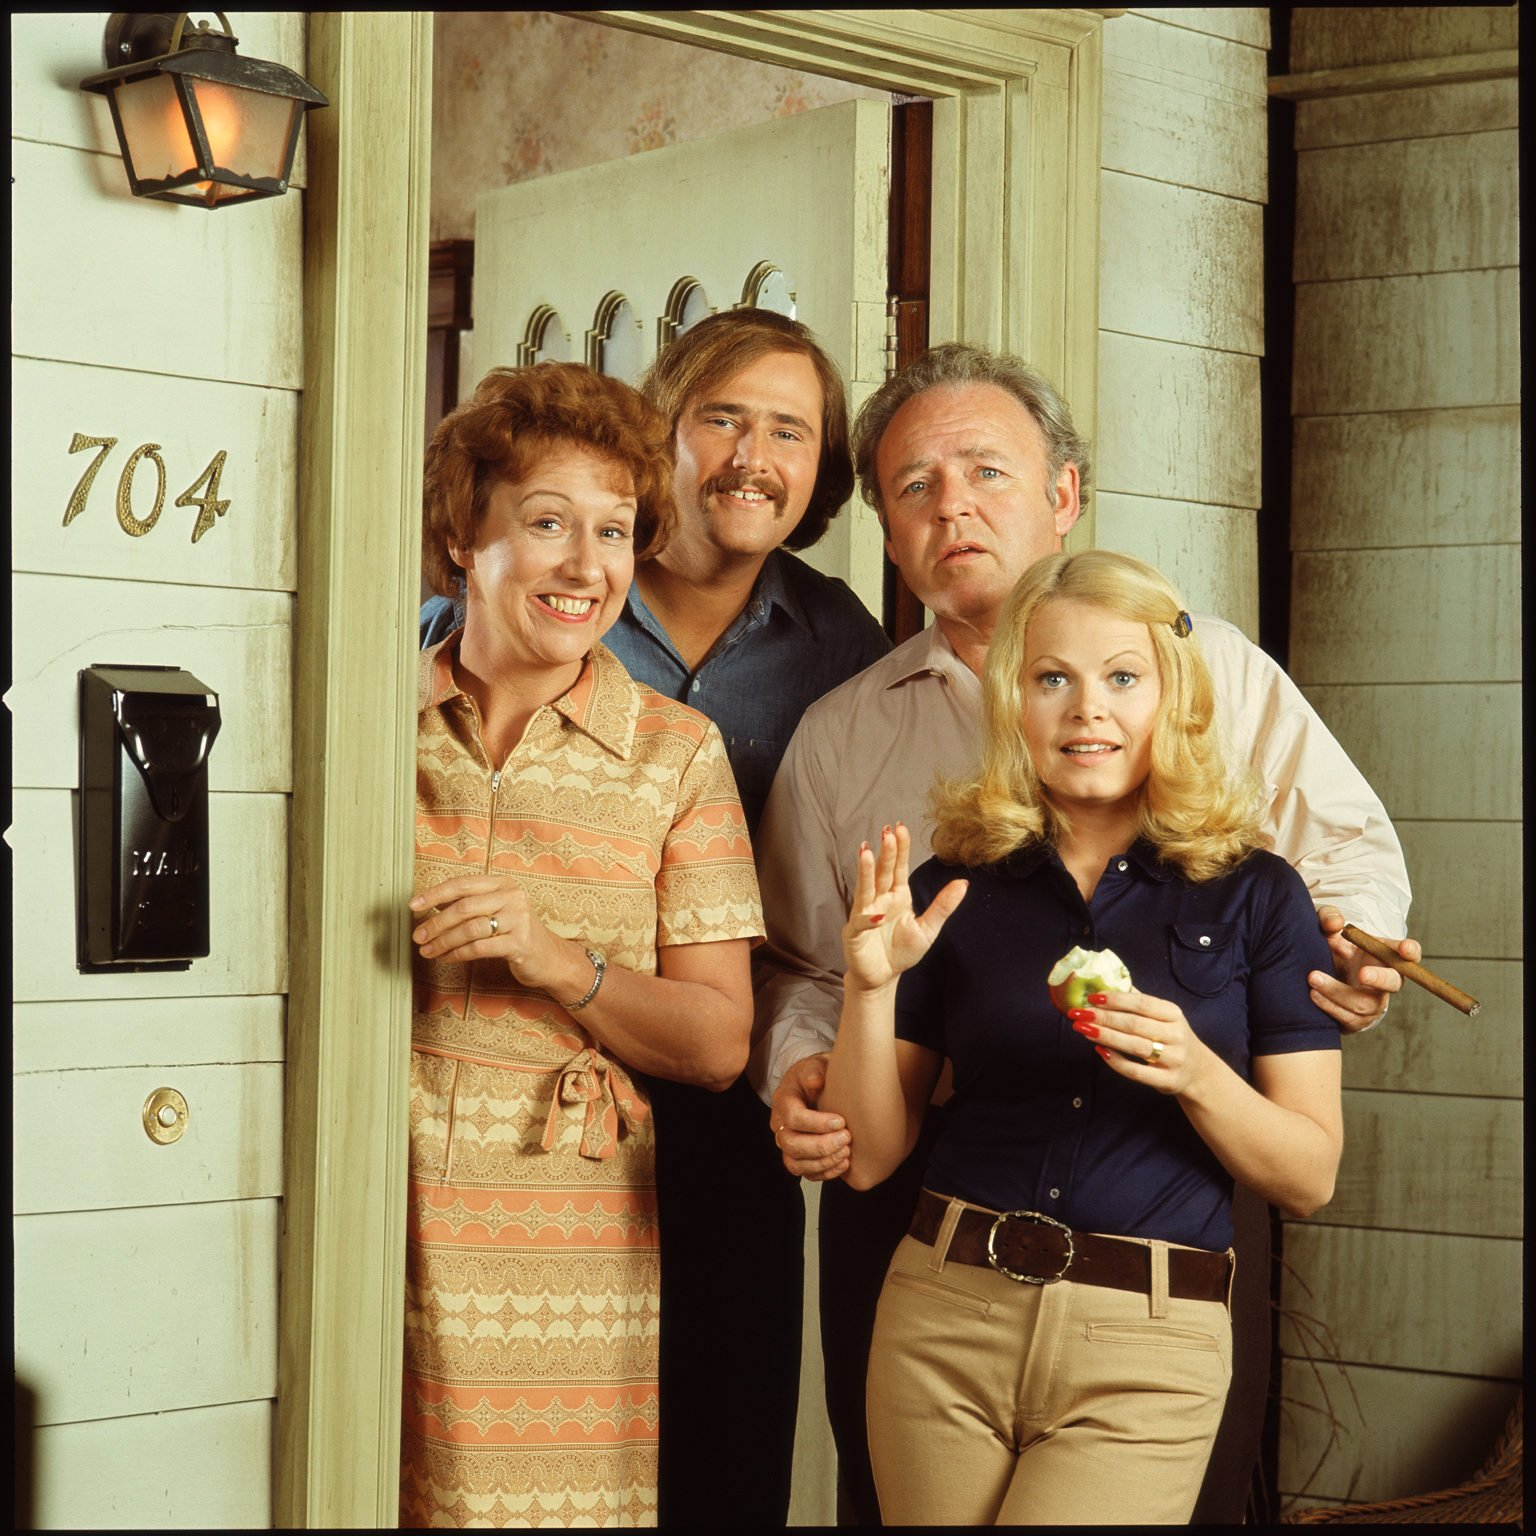 The 'All in the Family,'  cast as seen from left are, Jean Stapleton, Rob Reiner, Carroll O'Connor (1924 - 2001), and Sally Struthers. | Source: Getty Images.